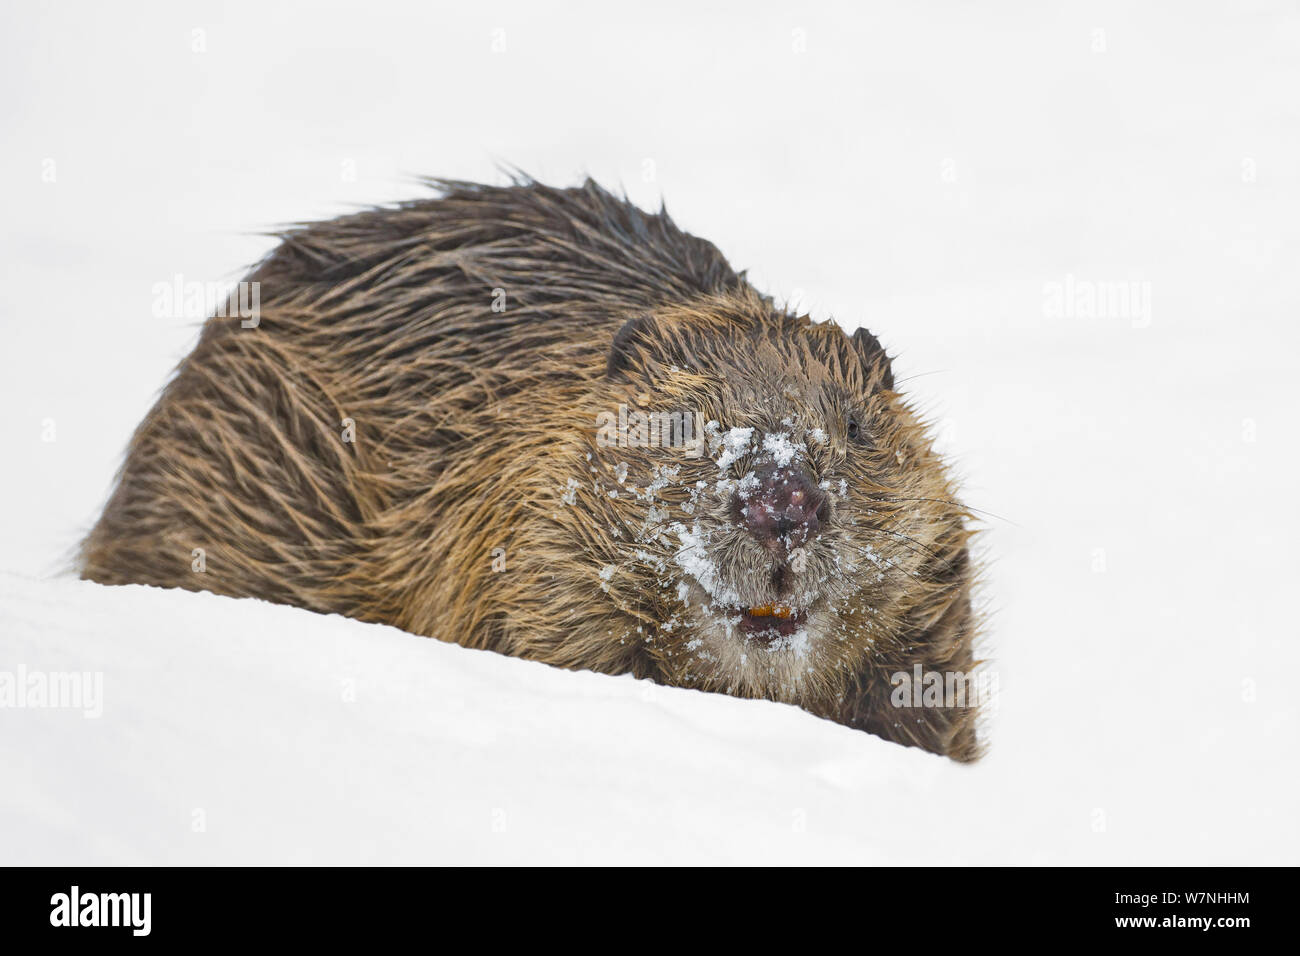 European beaver (Castor fiber) in snow. Portrait with snow covered face. Southern Norway. February. Stock Photo